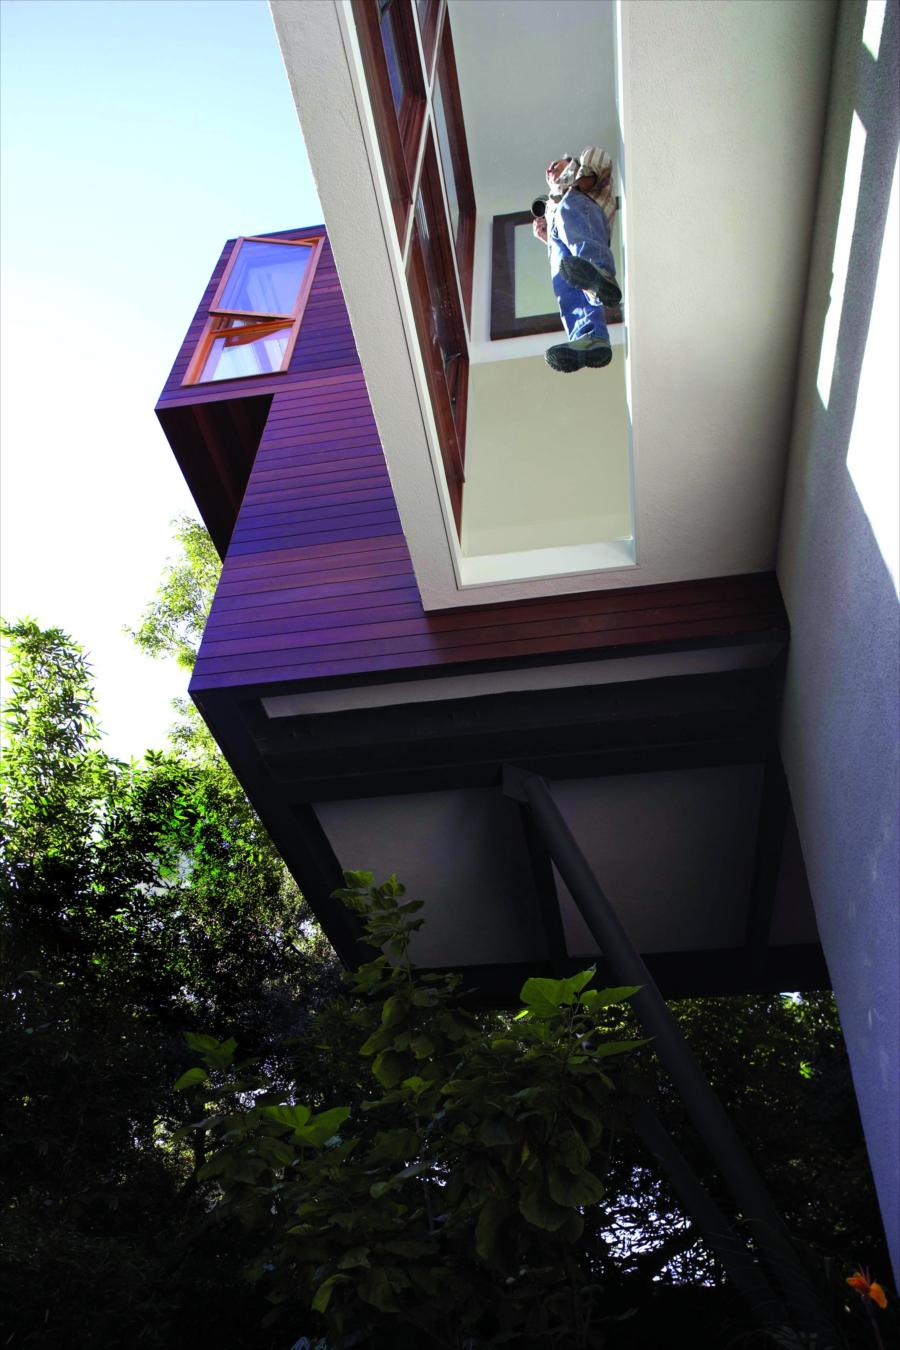 A floor window captures the view below remodeling for Frazer crane architect